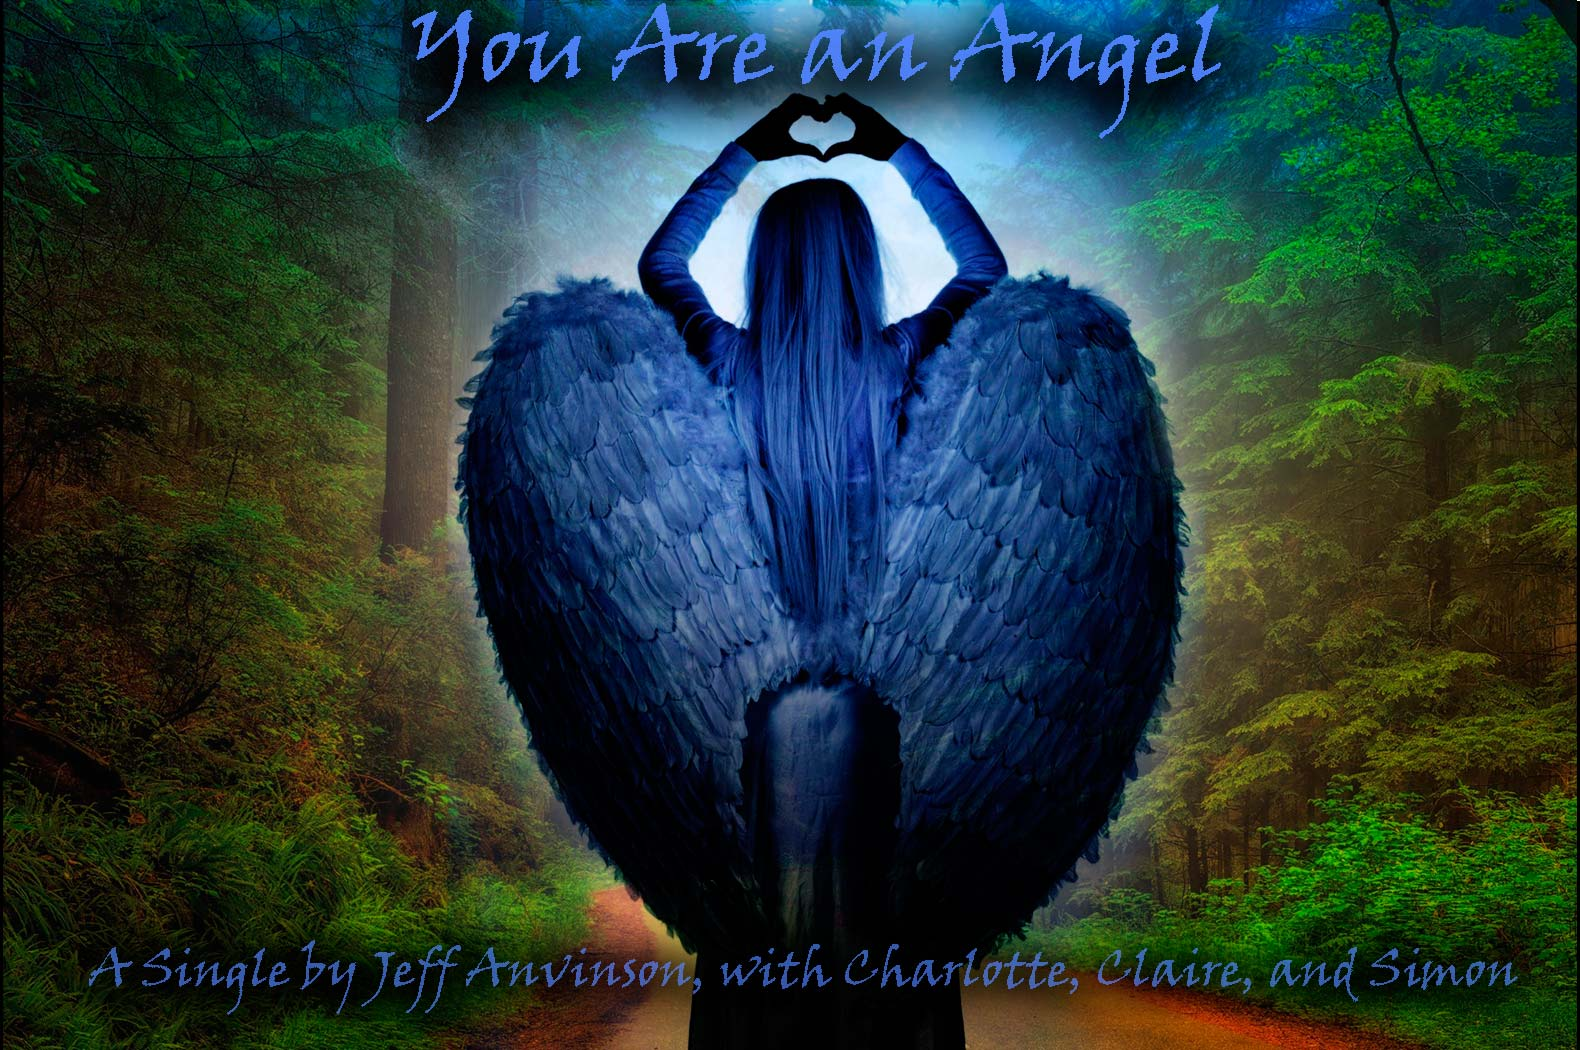 You Are an Angel by Jeff Anvinson, a digital single available on iTunes and Amazon